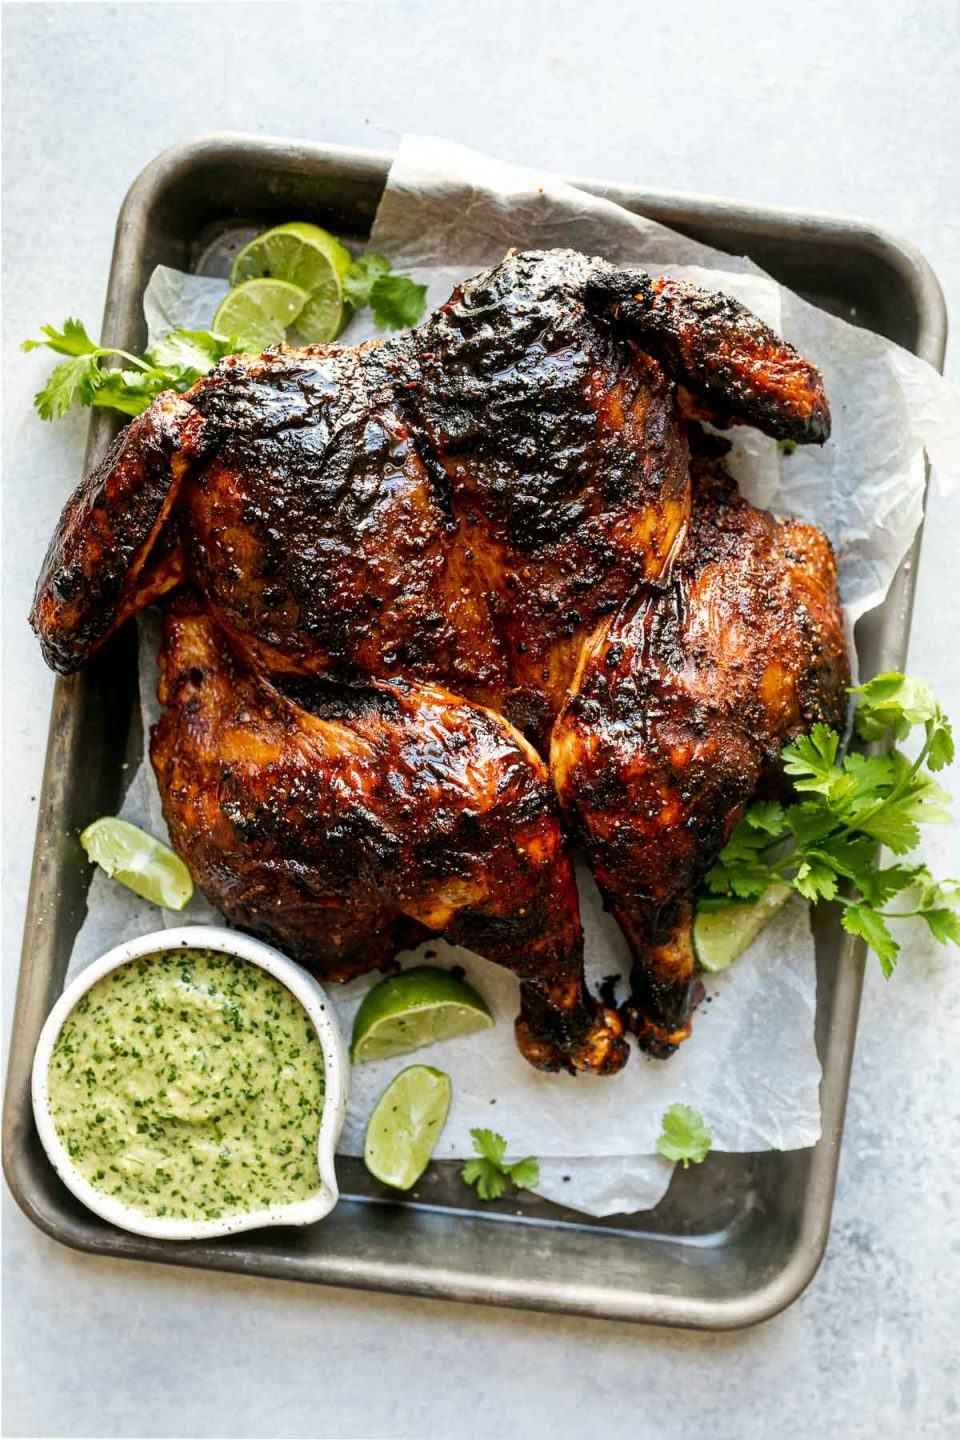 Grilled spatchcocked chicken with crispy, charred skin, sitting atop a parchment-lined baking sheet surrounded by lime wedges, fresh cilantro, & charred jalapeno sauce. The baking sheet sits atop a light blue surface.